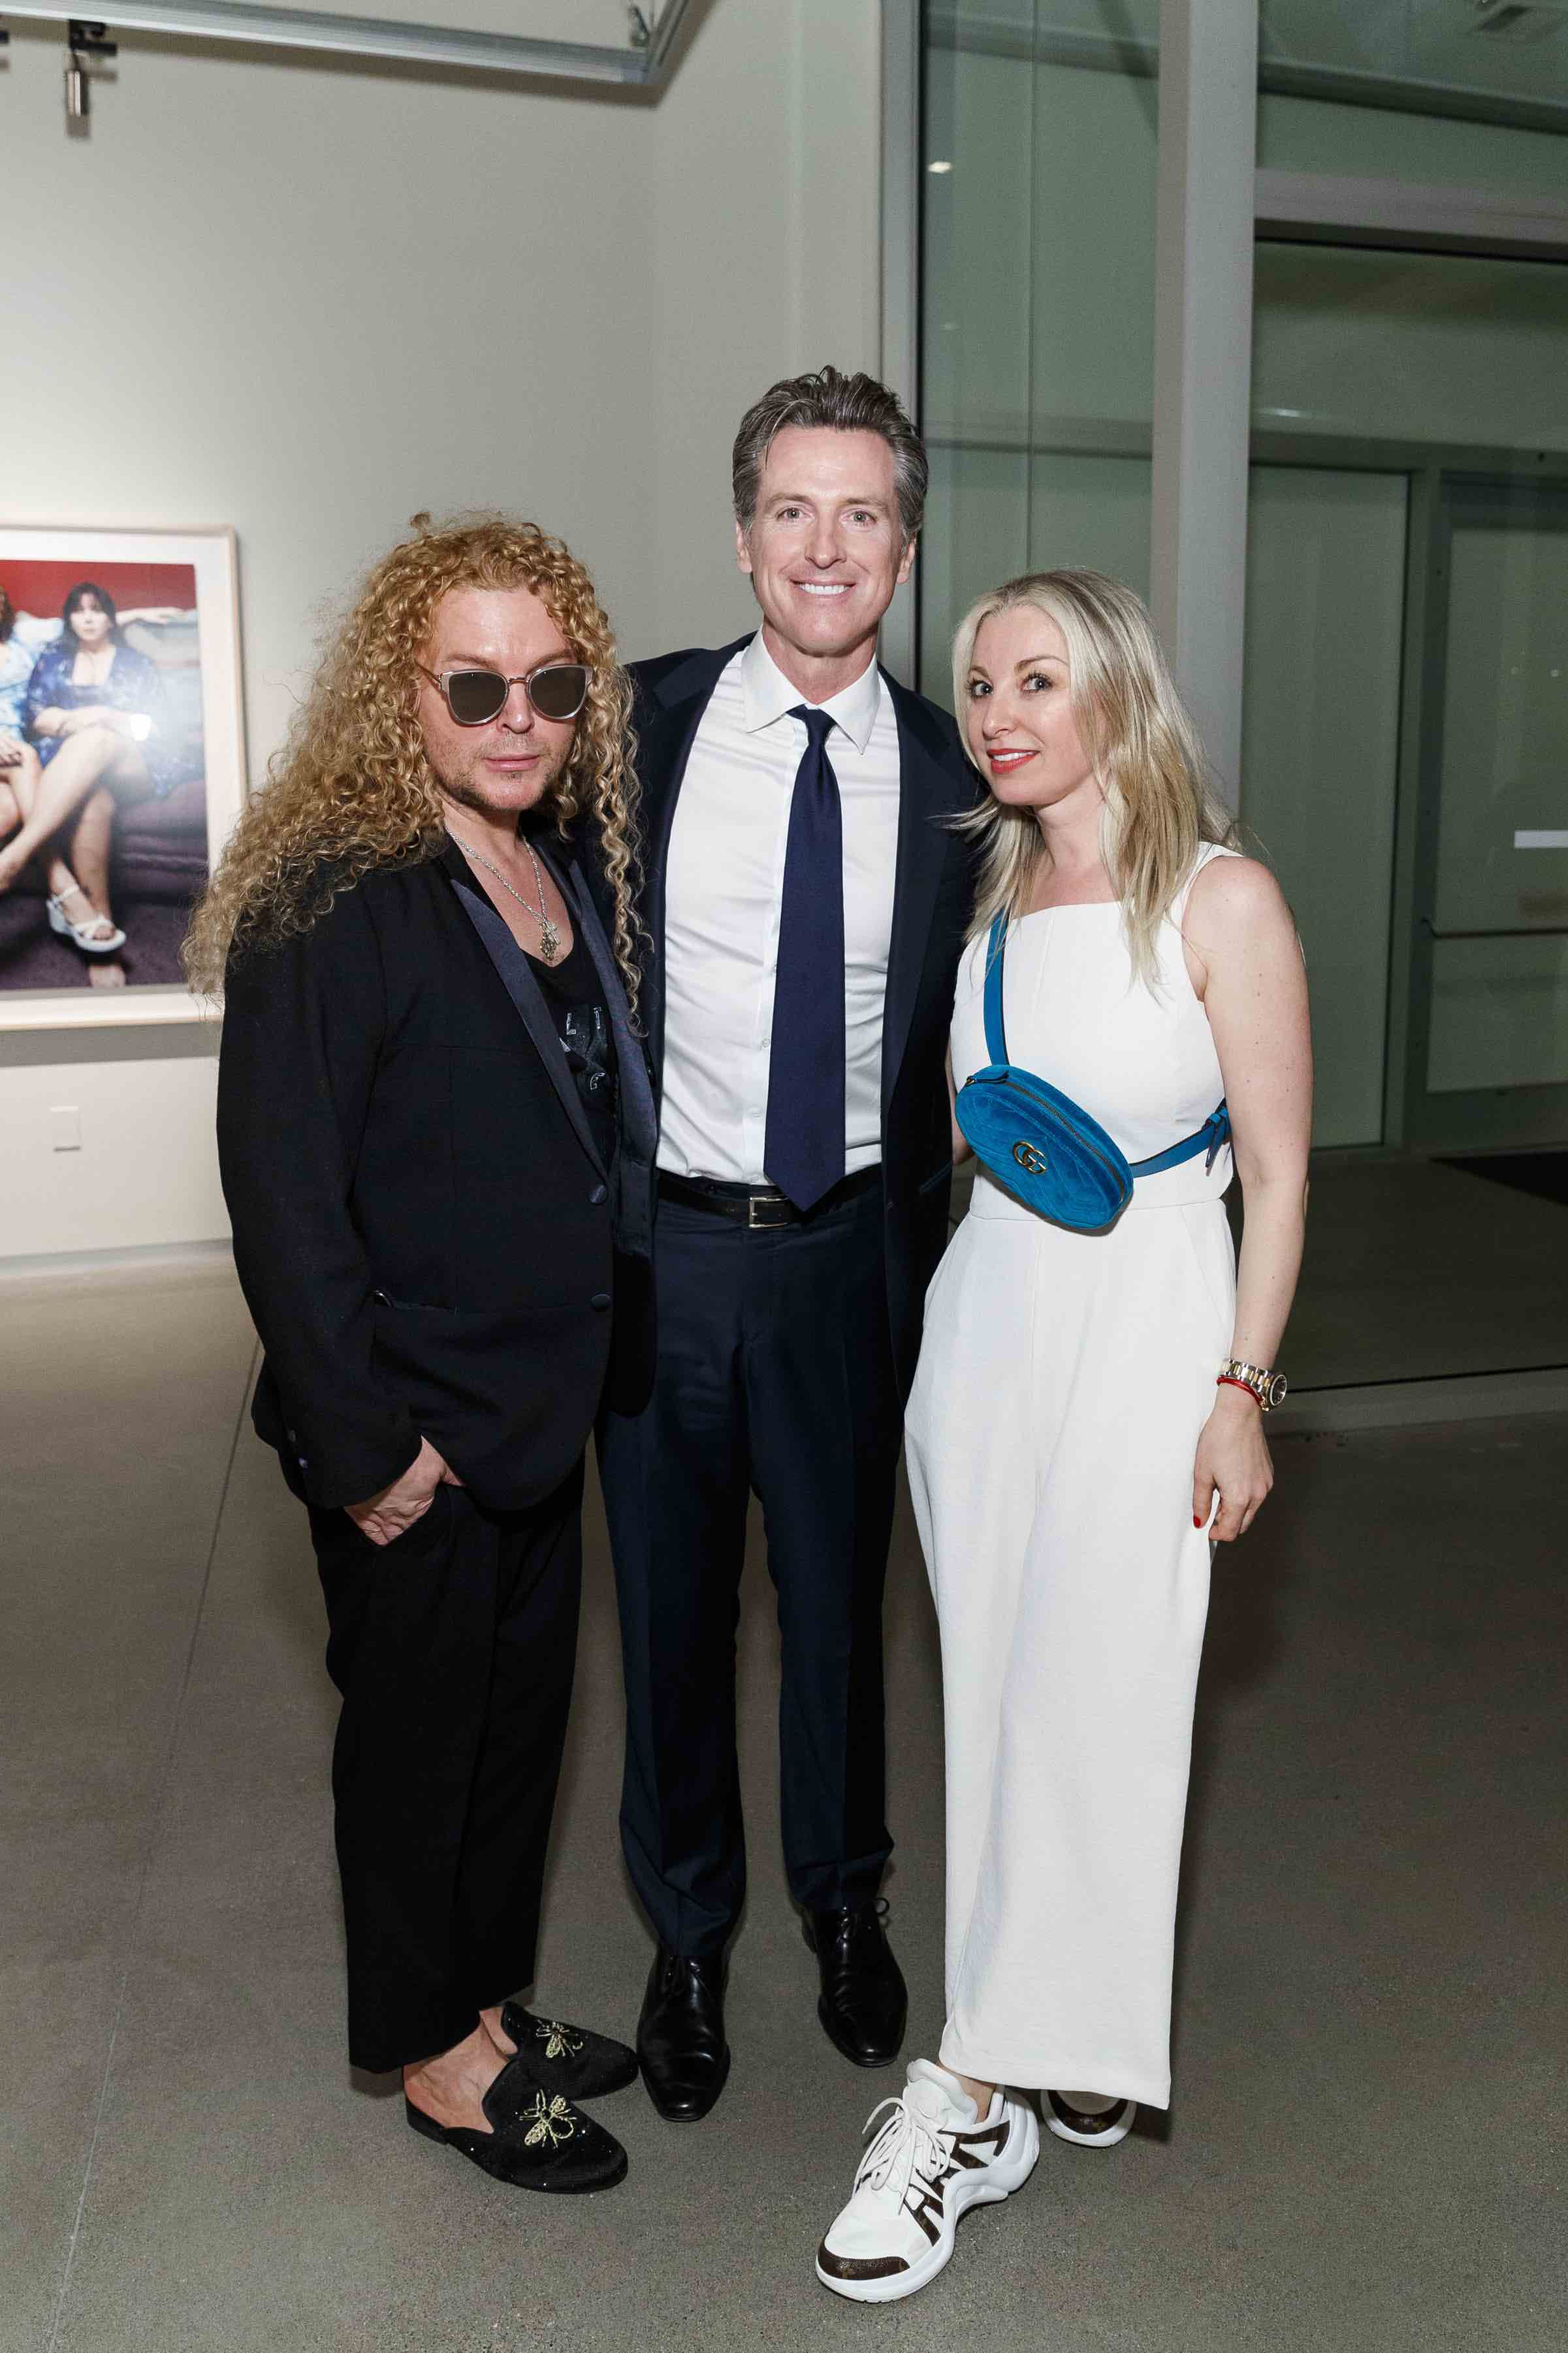 Vasily Vein, Gavin Newsom and Sonya Molodetskaya (Photo - Drew Altizer)